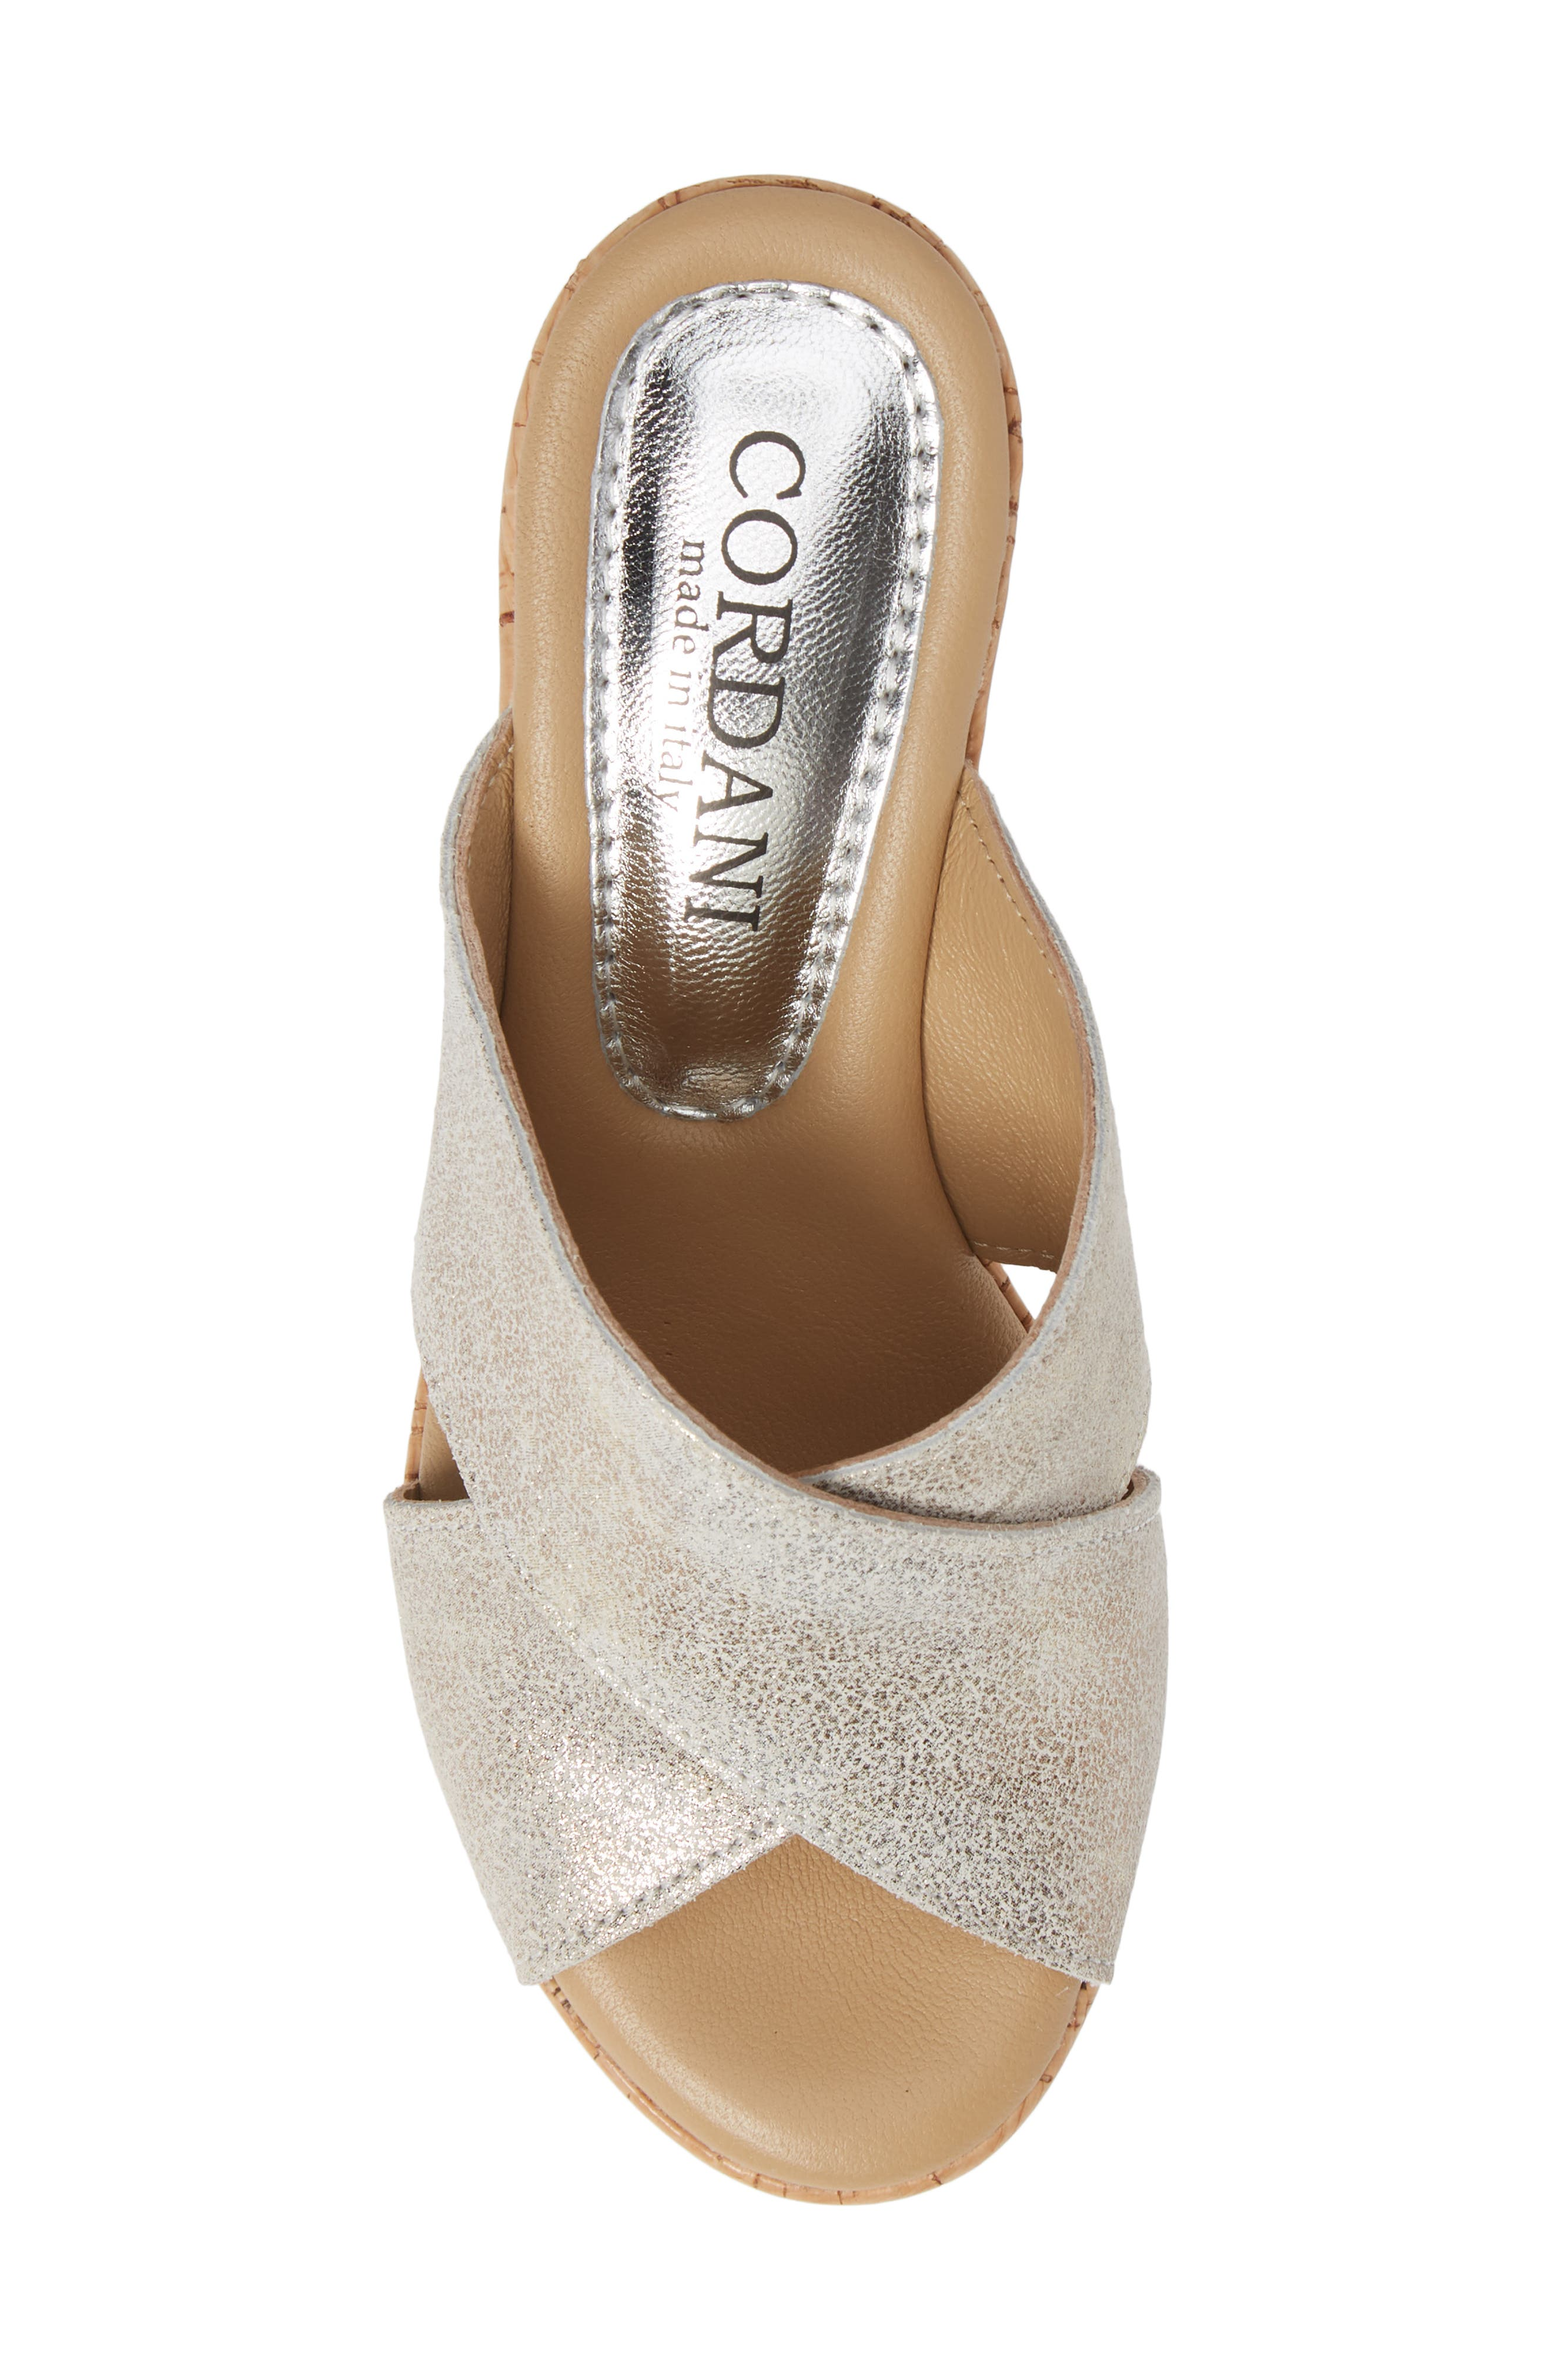 Jan Platform Wedge Slide Sandal,                             Alternate thumbnail 5, color,                             PEARL SUEDE